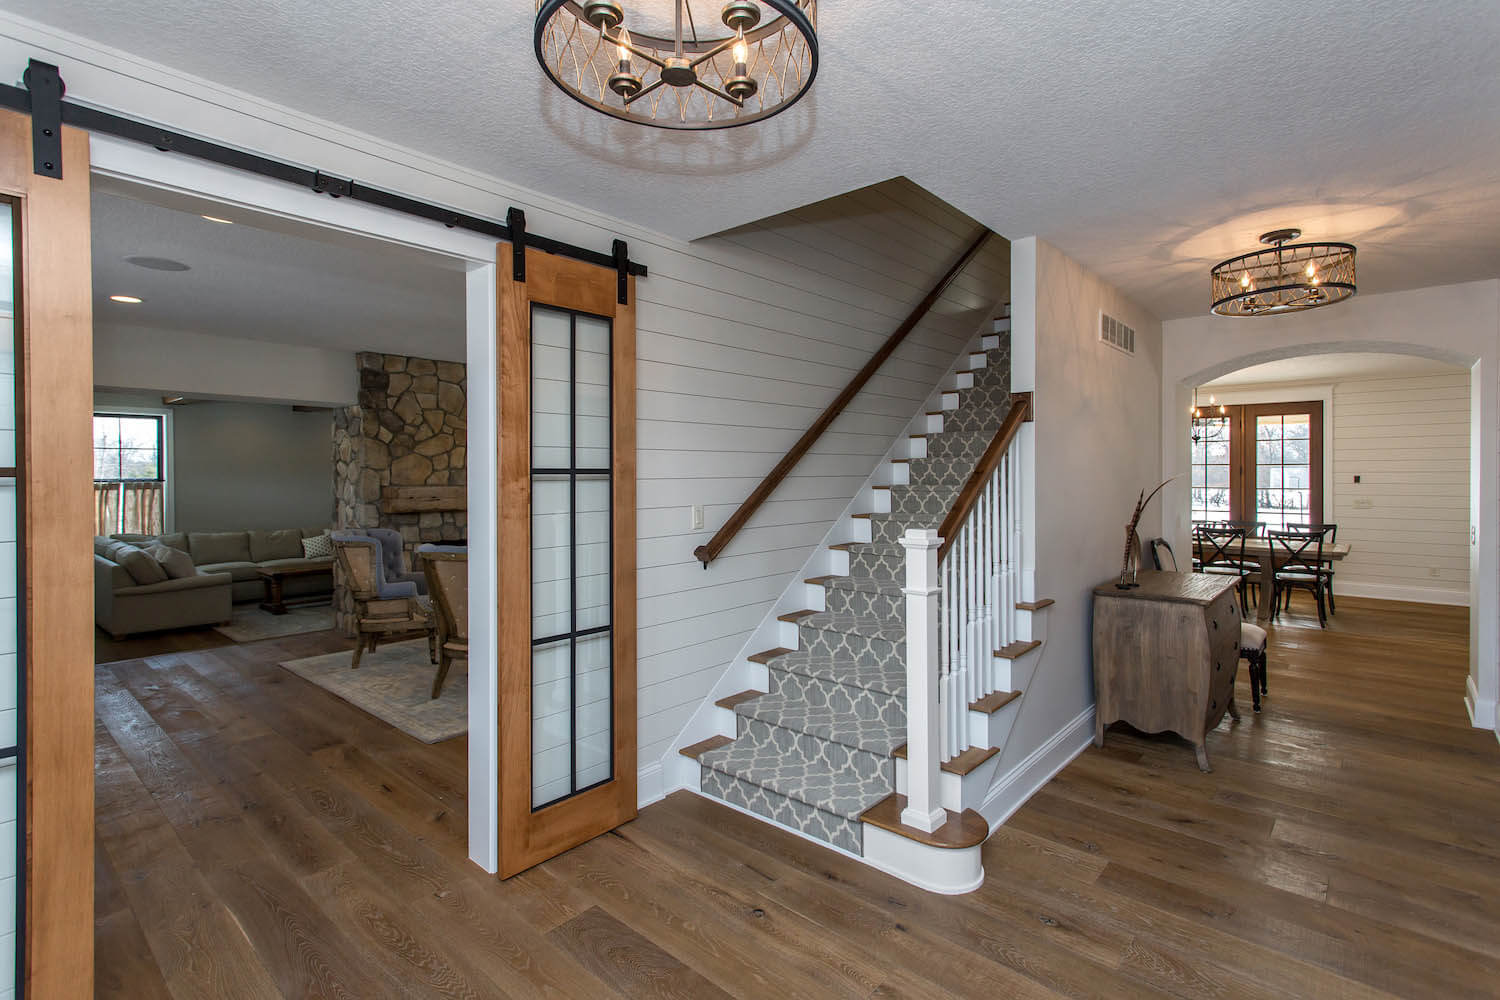 Entryway and steps